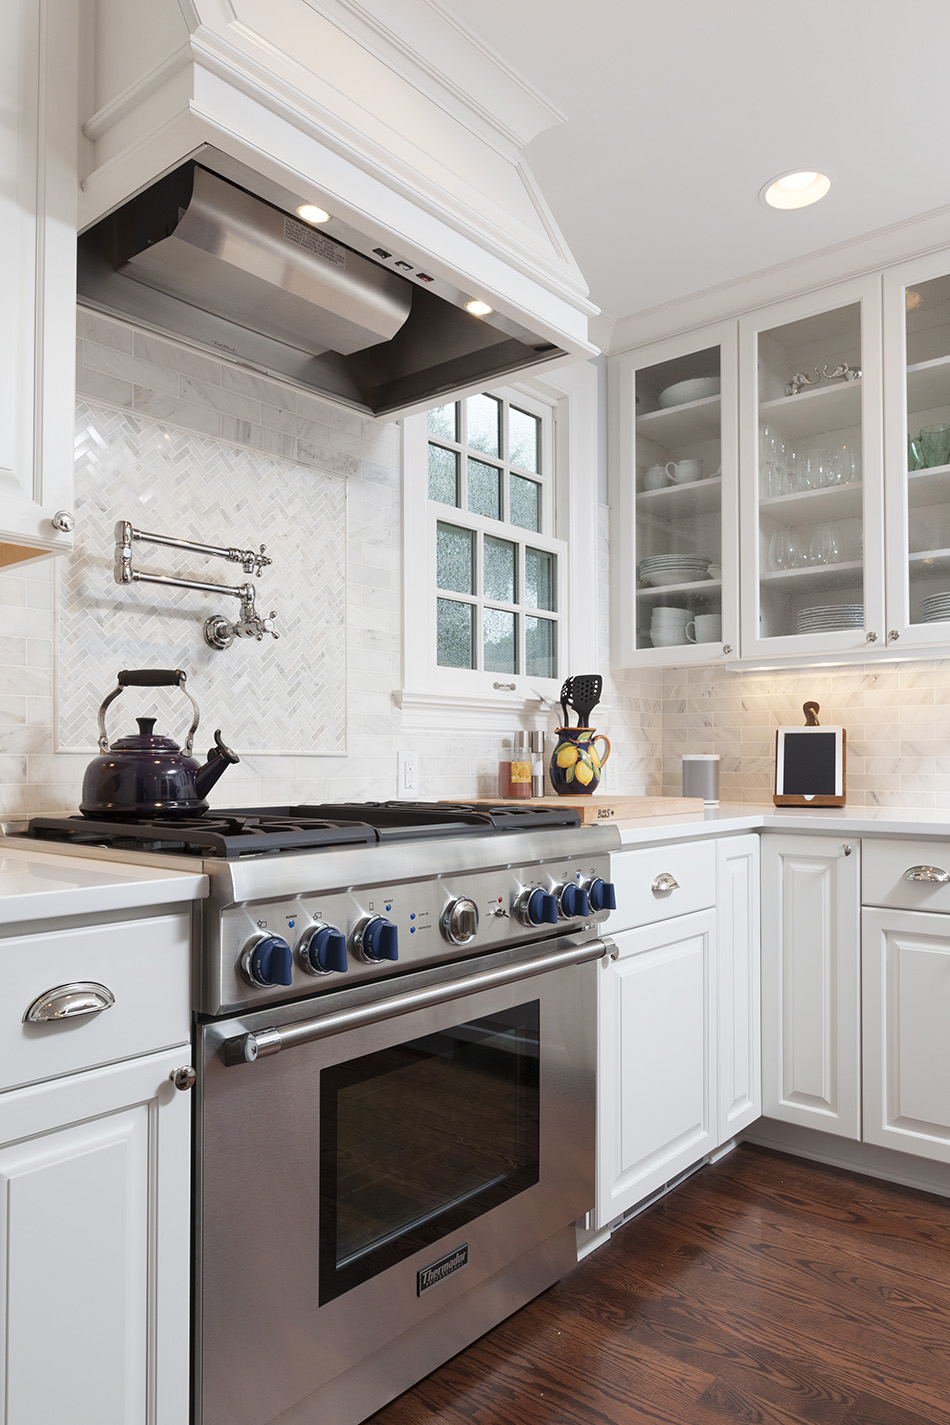 kitchen-design-custom-pot-filler-wall-mounted-faucet-stainless-steel-gas-stove